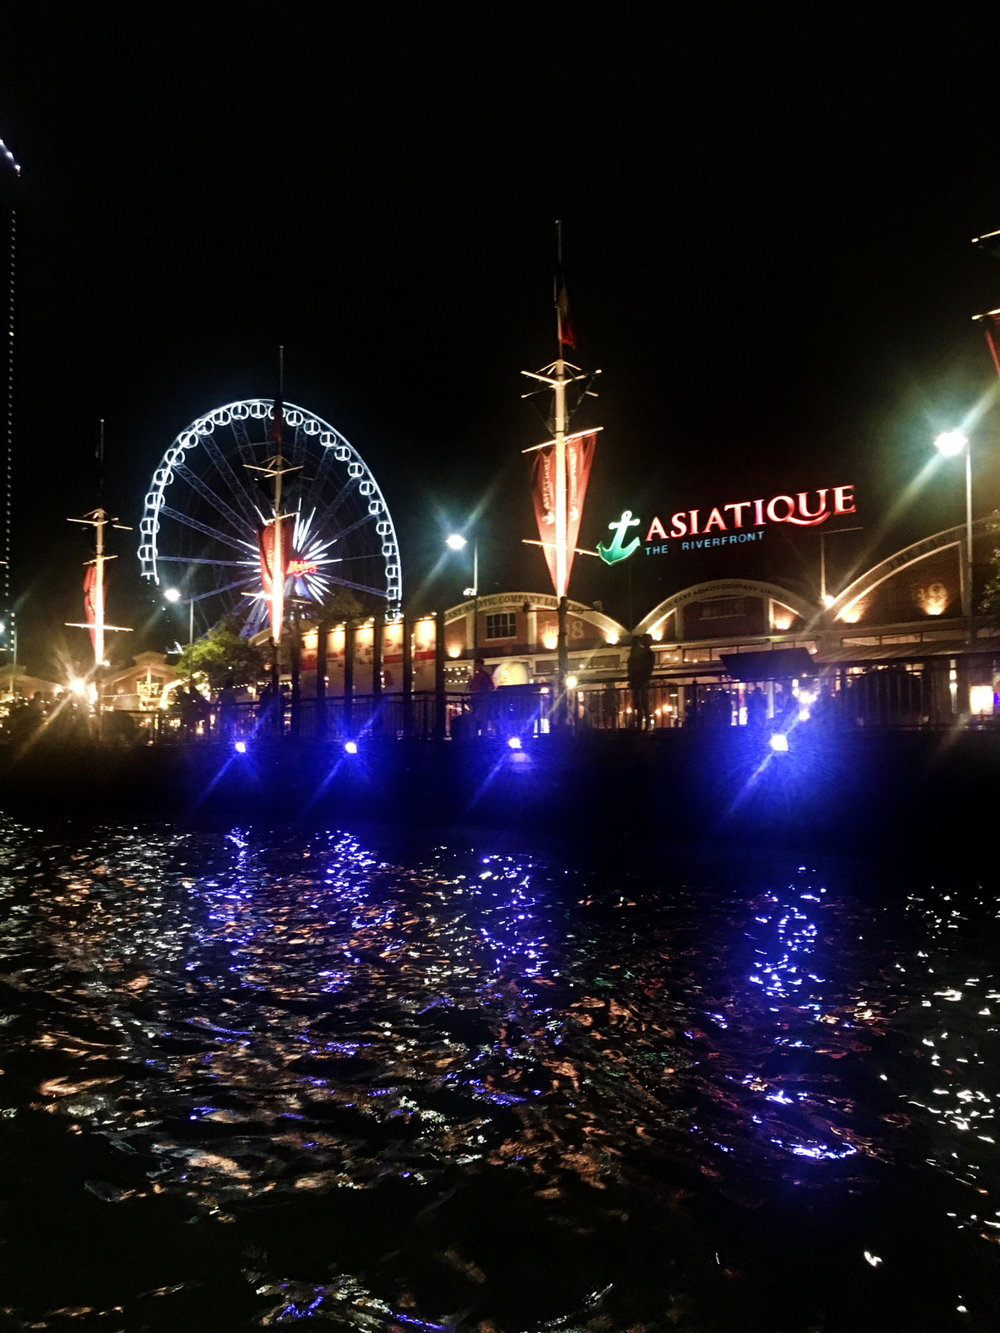 View of Asiatique shopping centre from the water in Bangkok